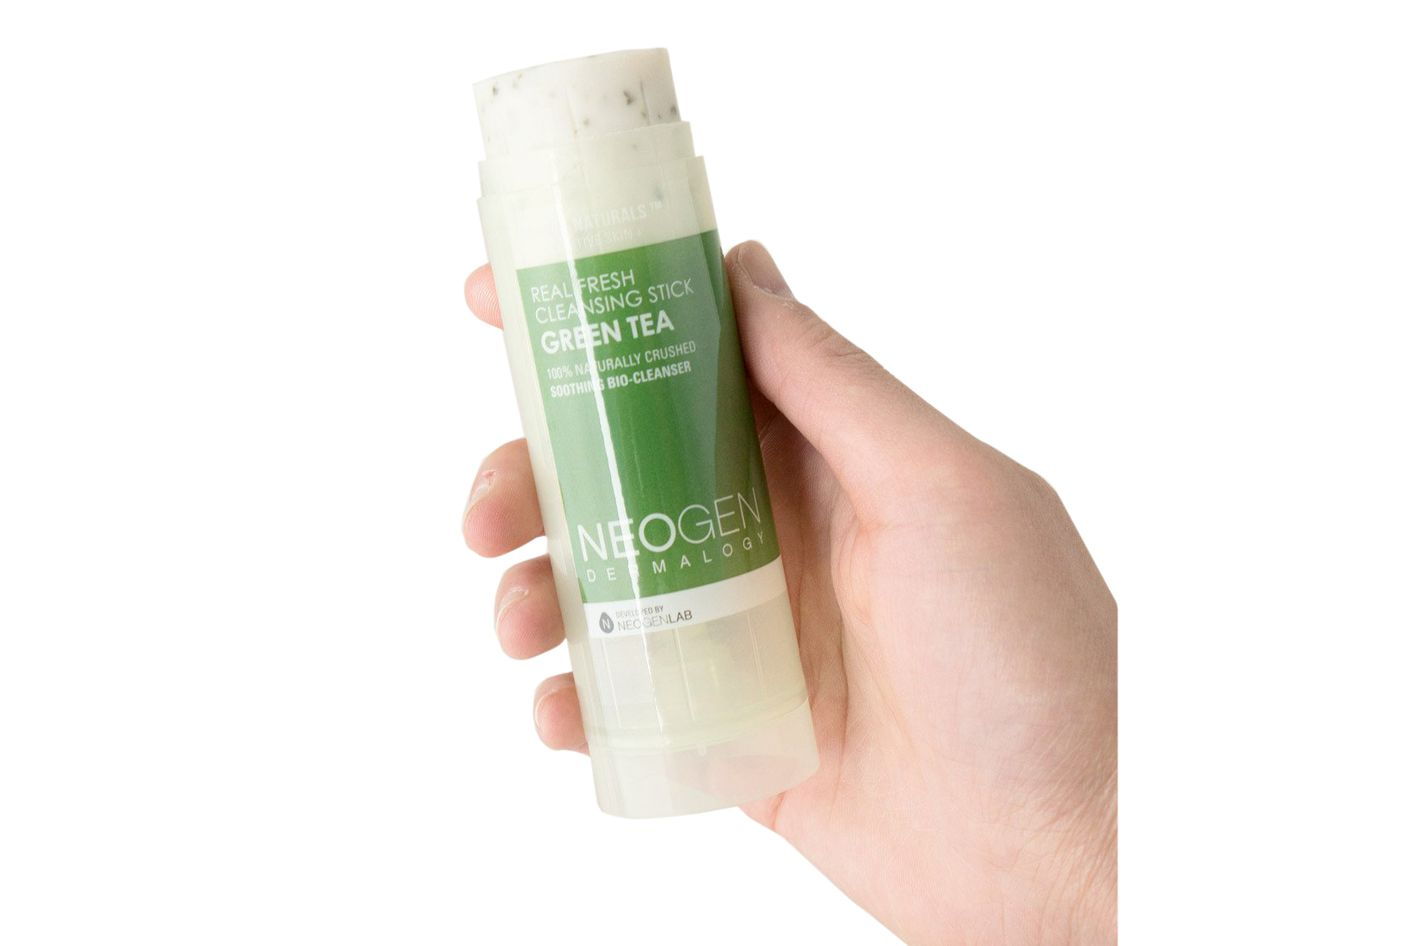 Neogen Green Tea Cleanser